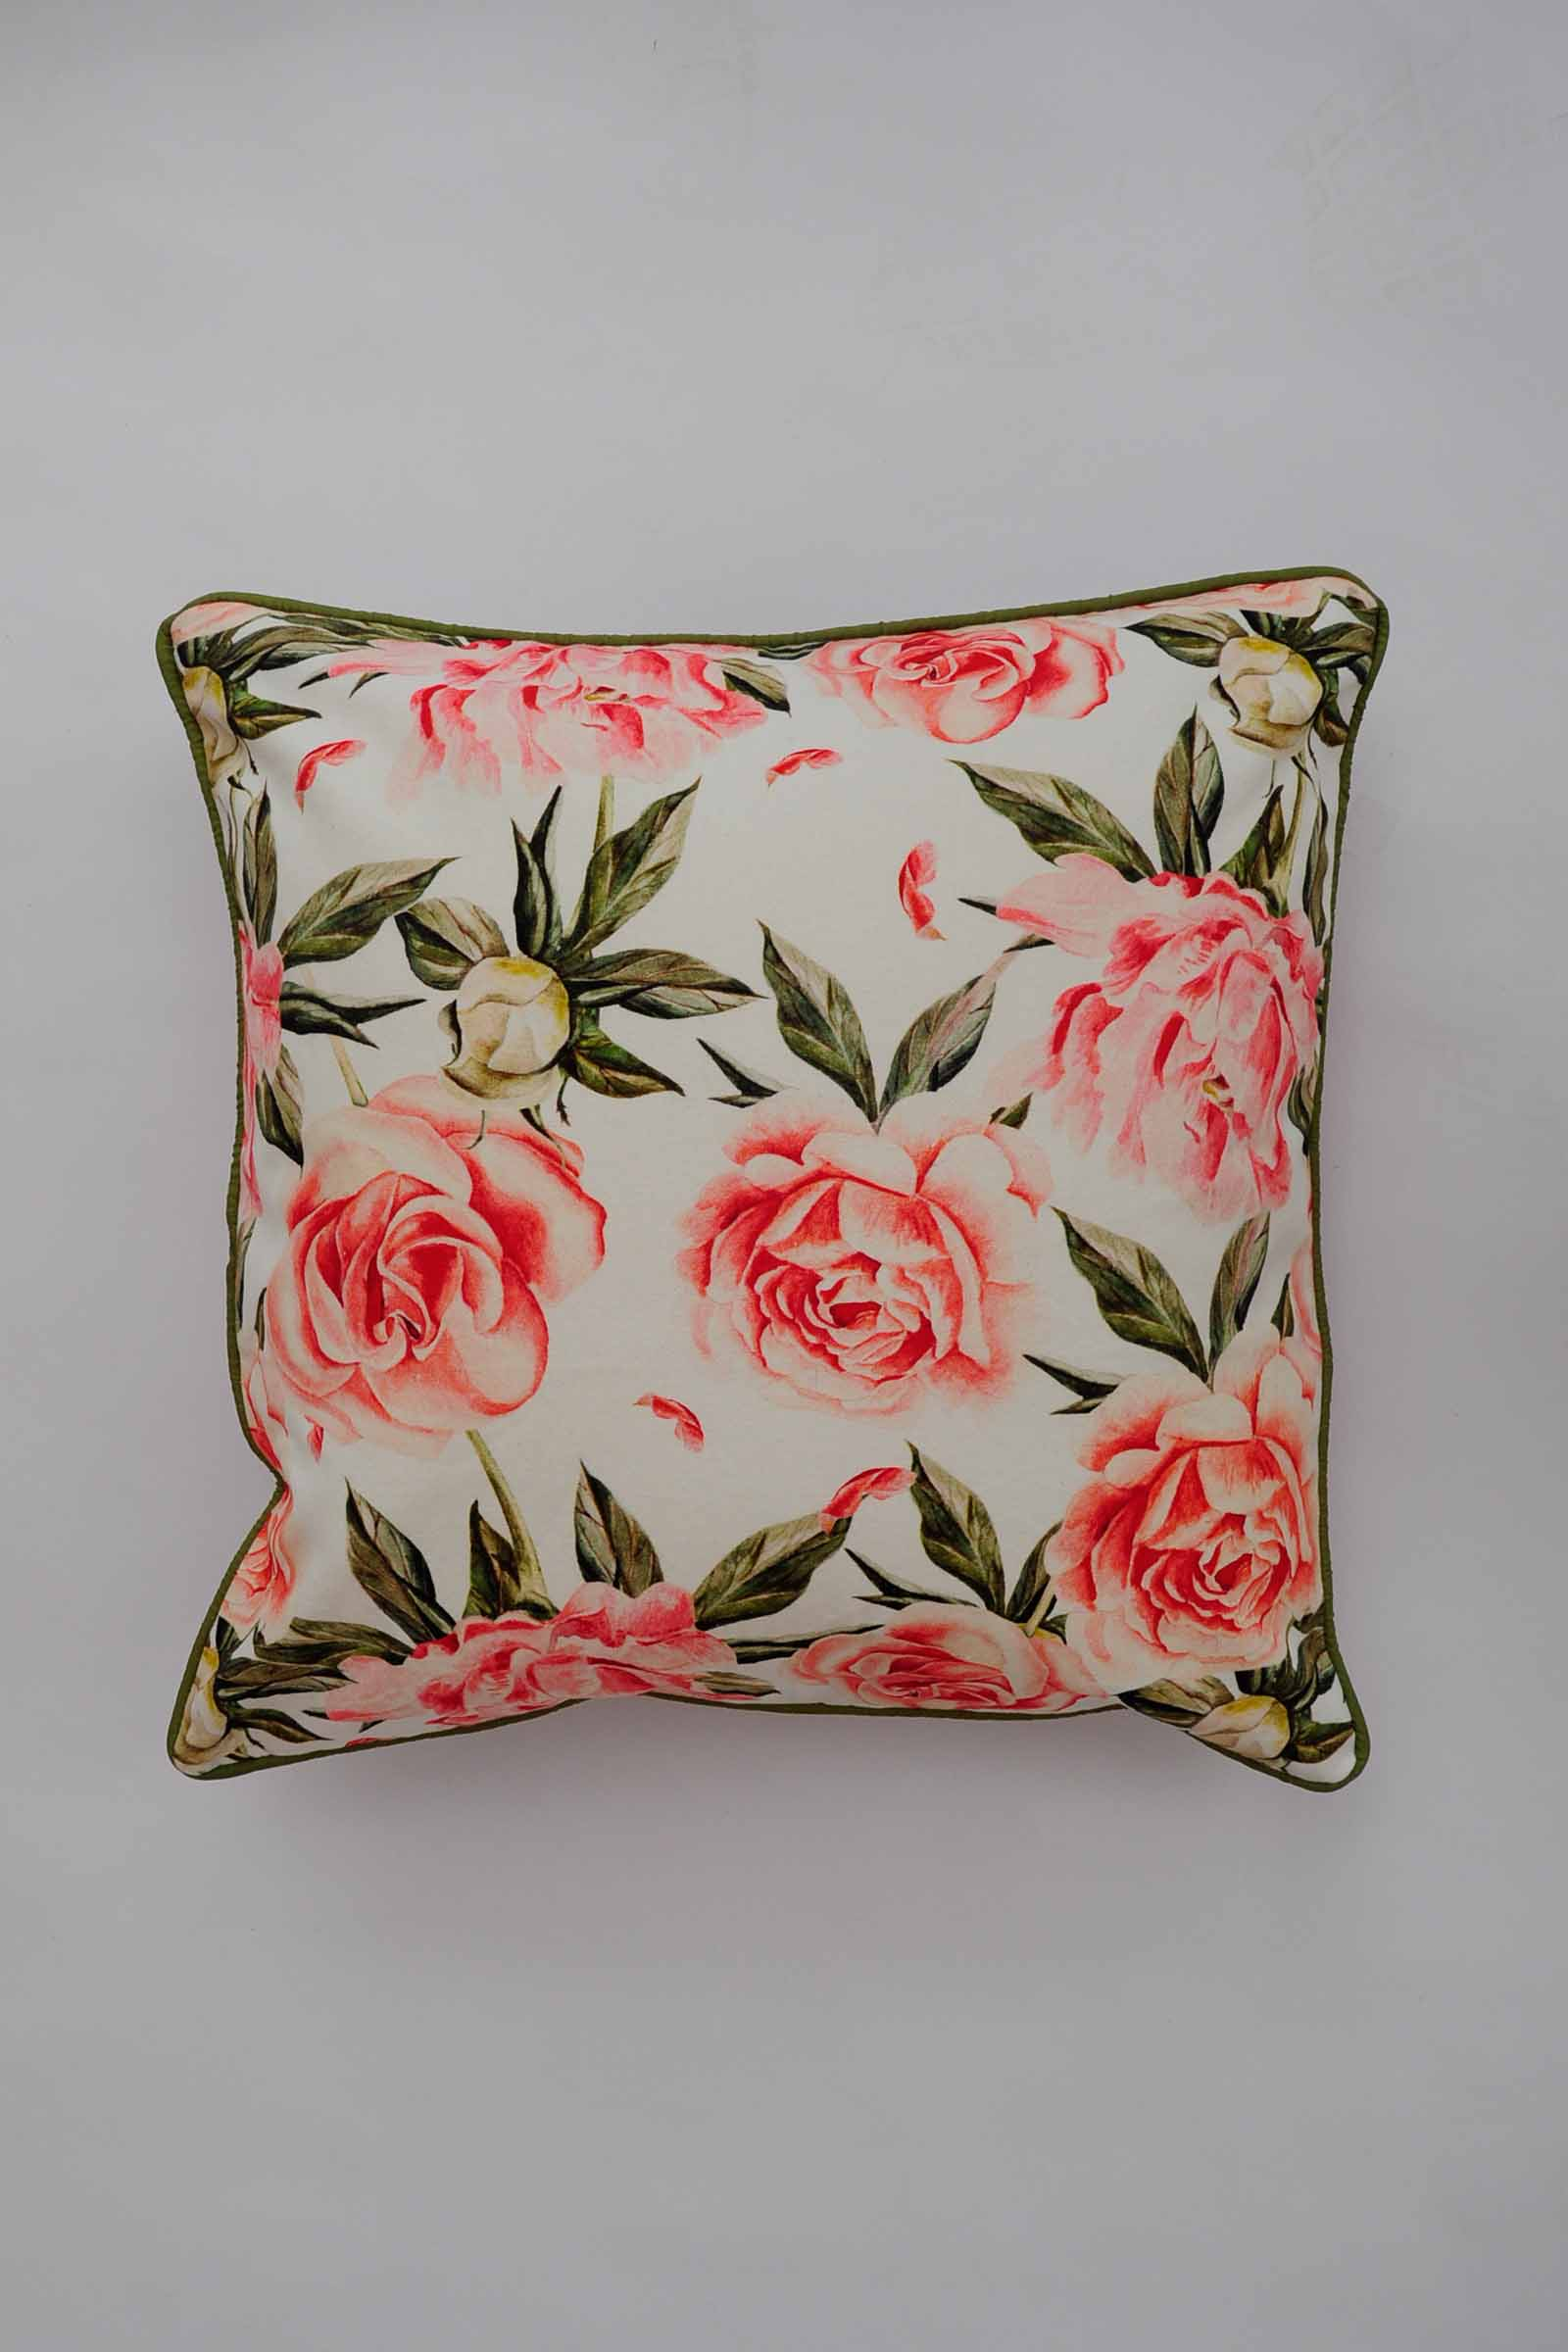 Rose Valley 16*16 Cushion Cover